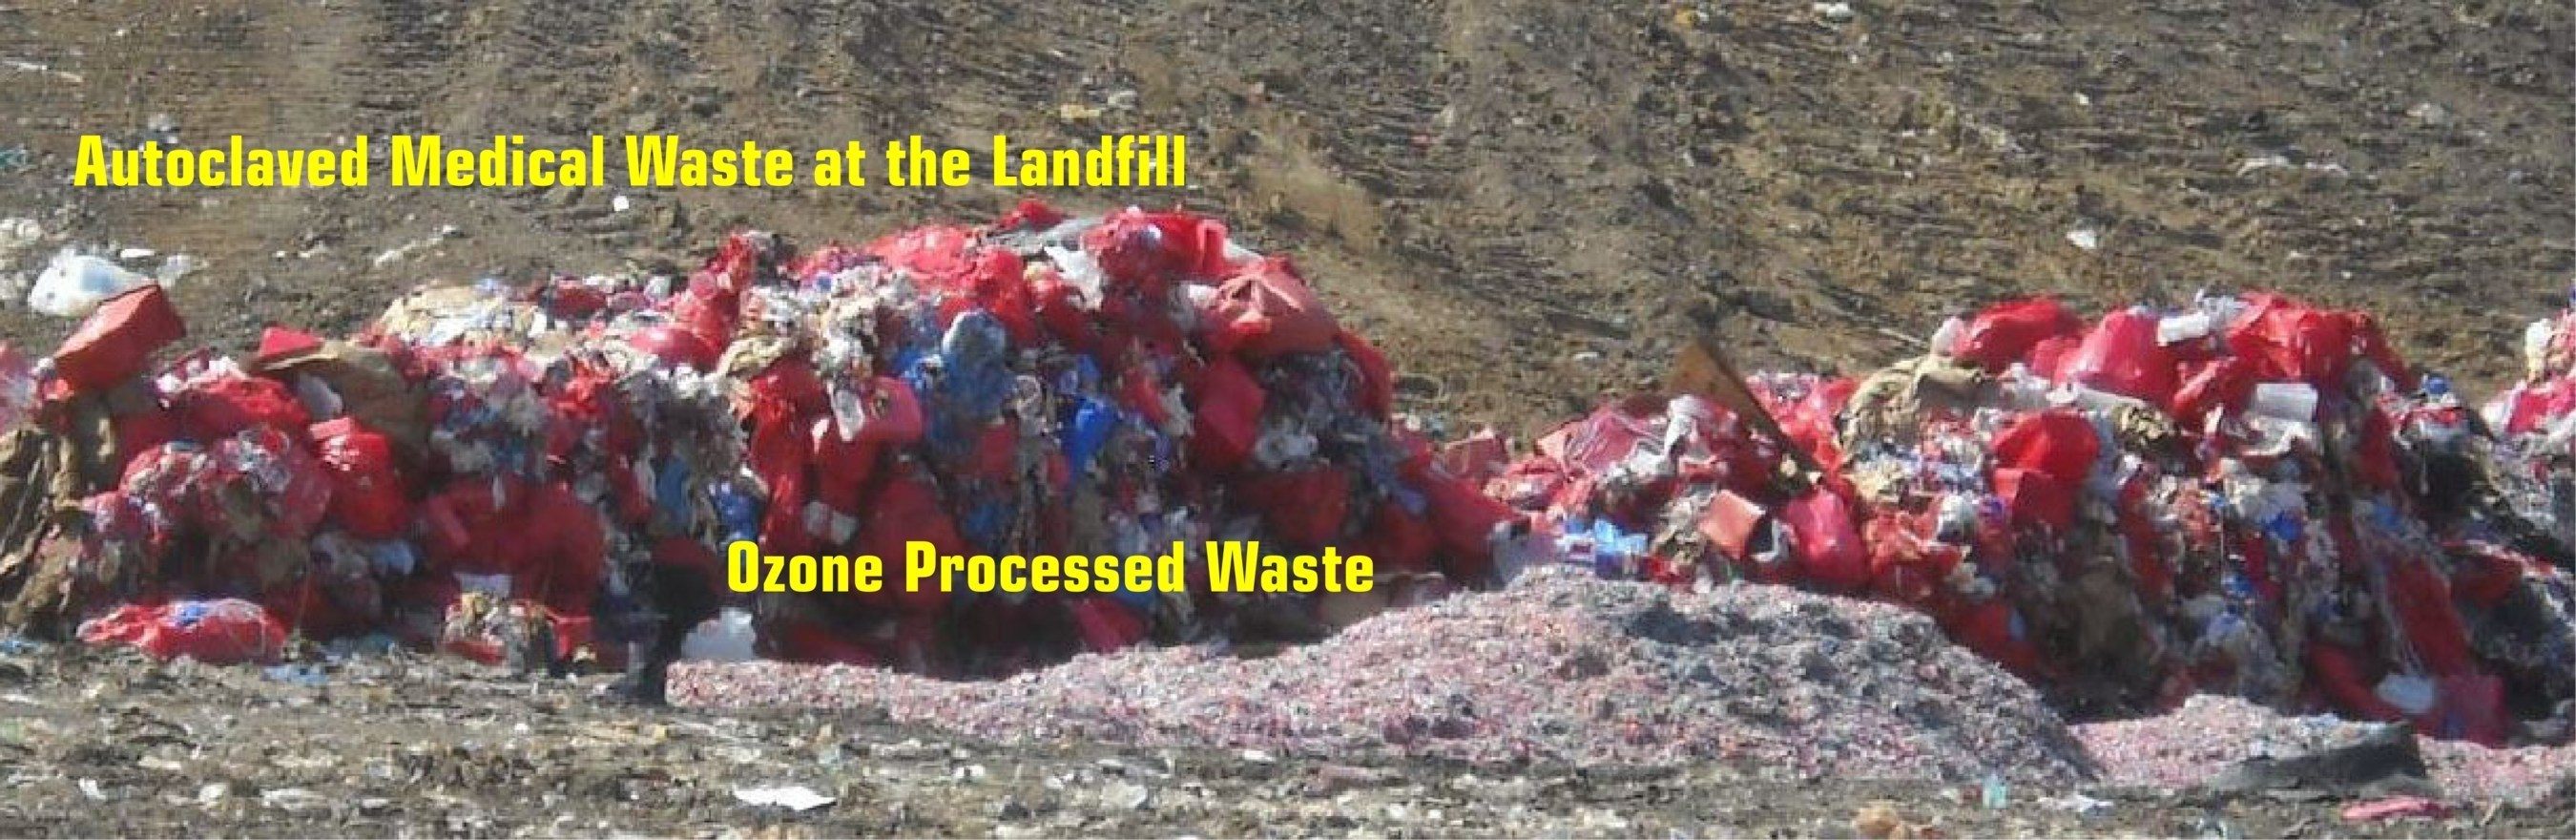 Autoclave and ozone processed waste at the landfill